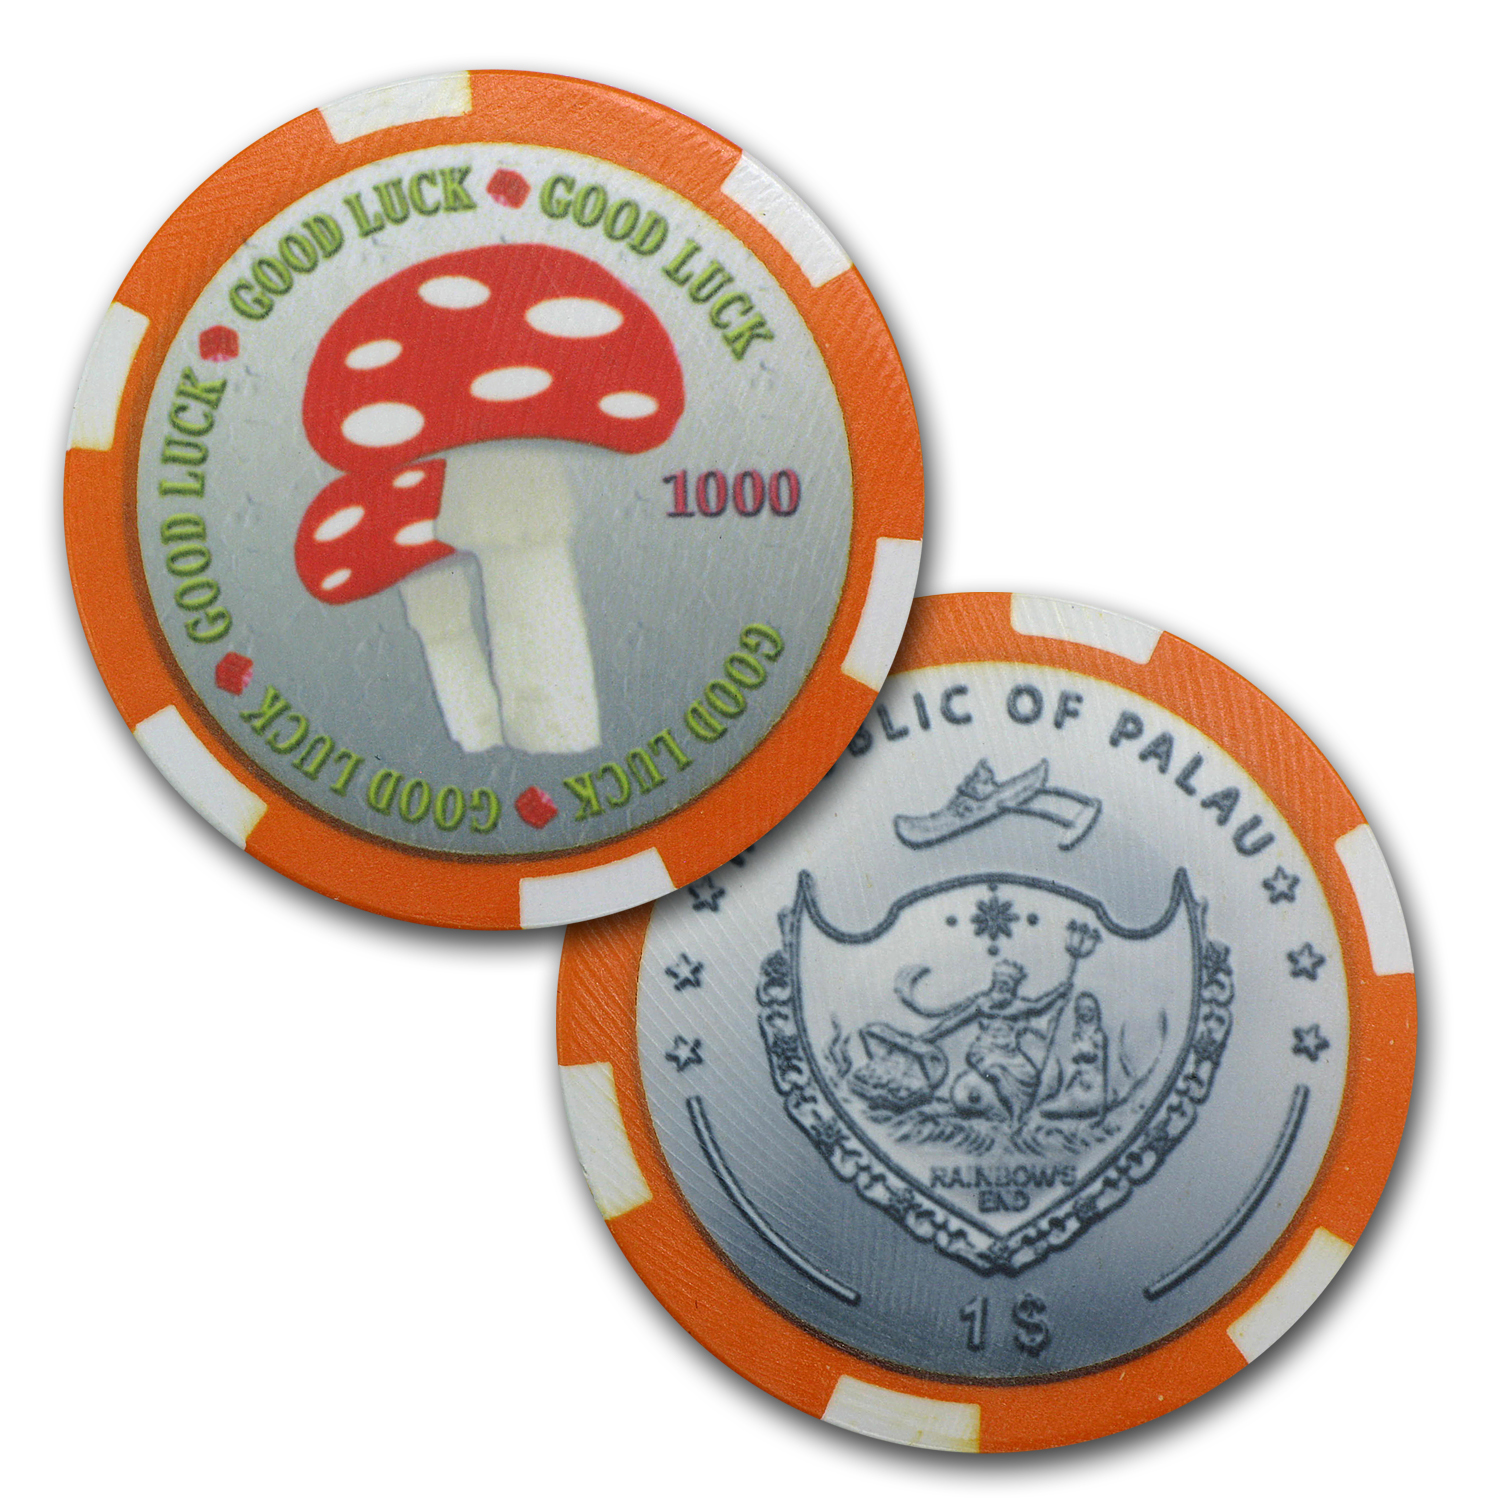 Palau $1 Good Luck Casino Coin Set - 9 Lucky Coins